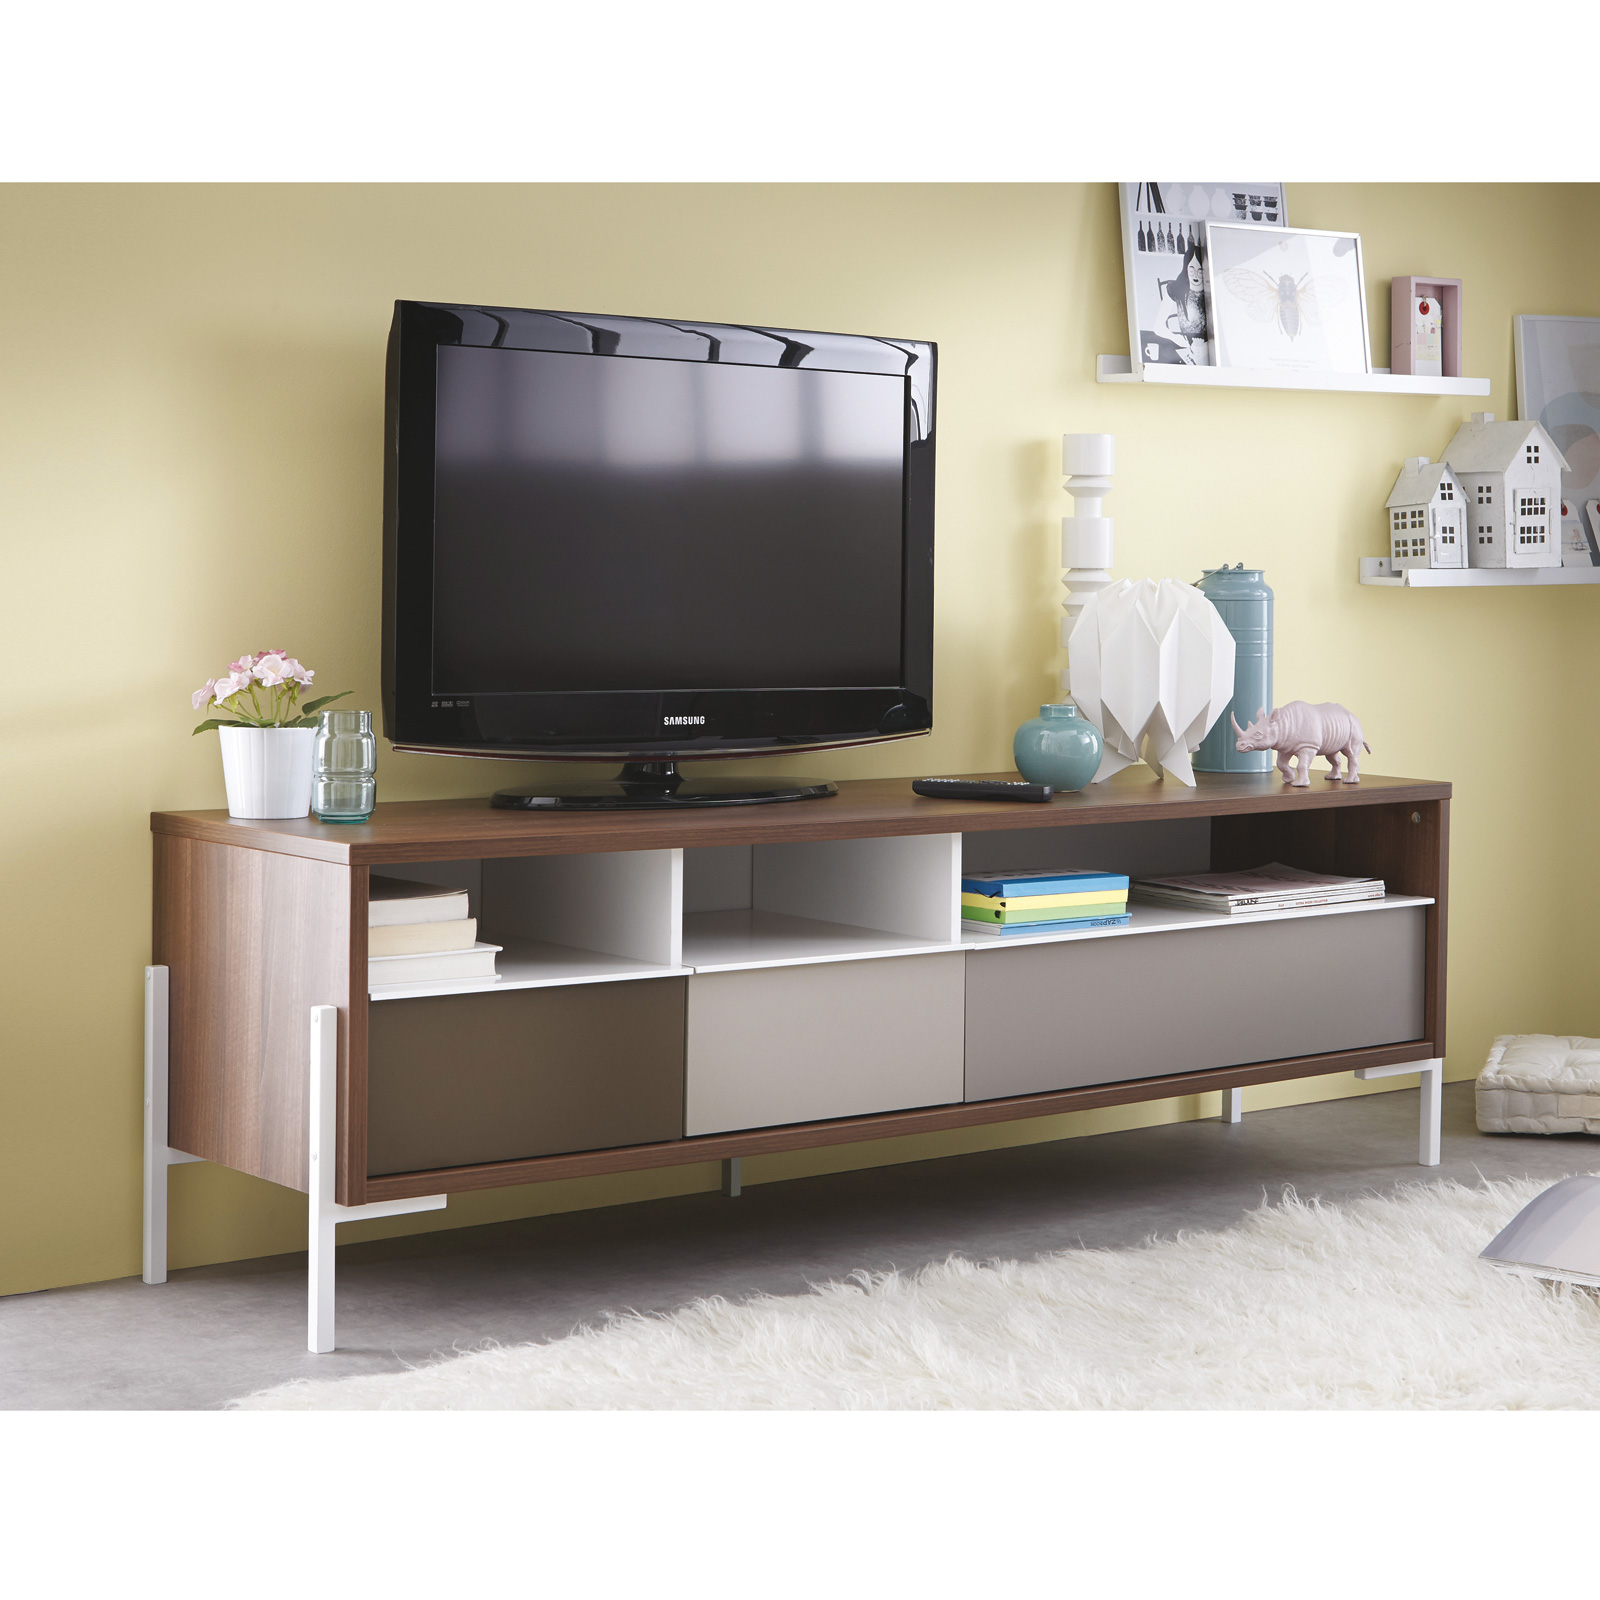 tv tisch vogue tv board lowboard tv unterschrank in nussbaum braun grau und wei ebay. Black Bedroom Furniture Sets. Home Design Ideas